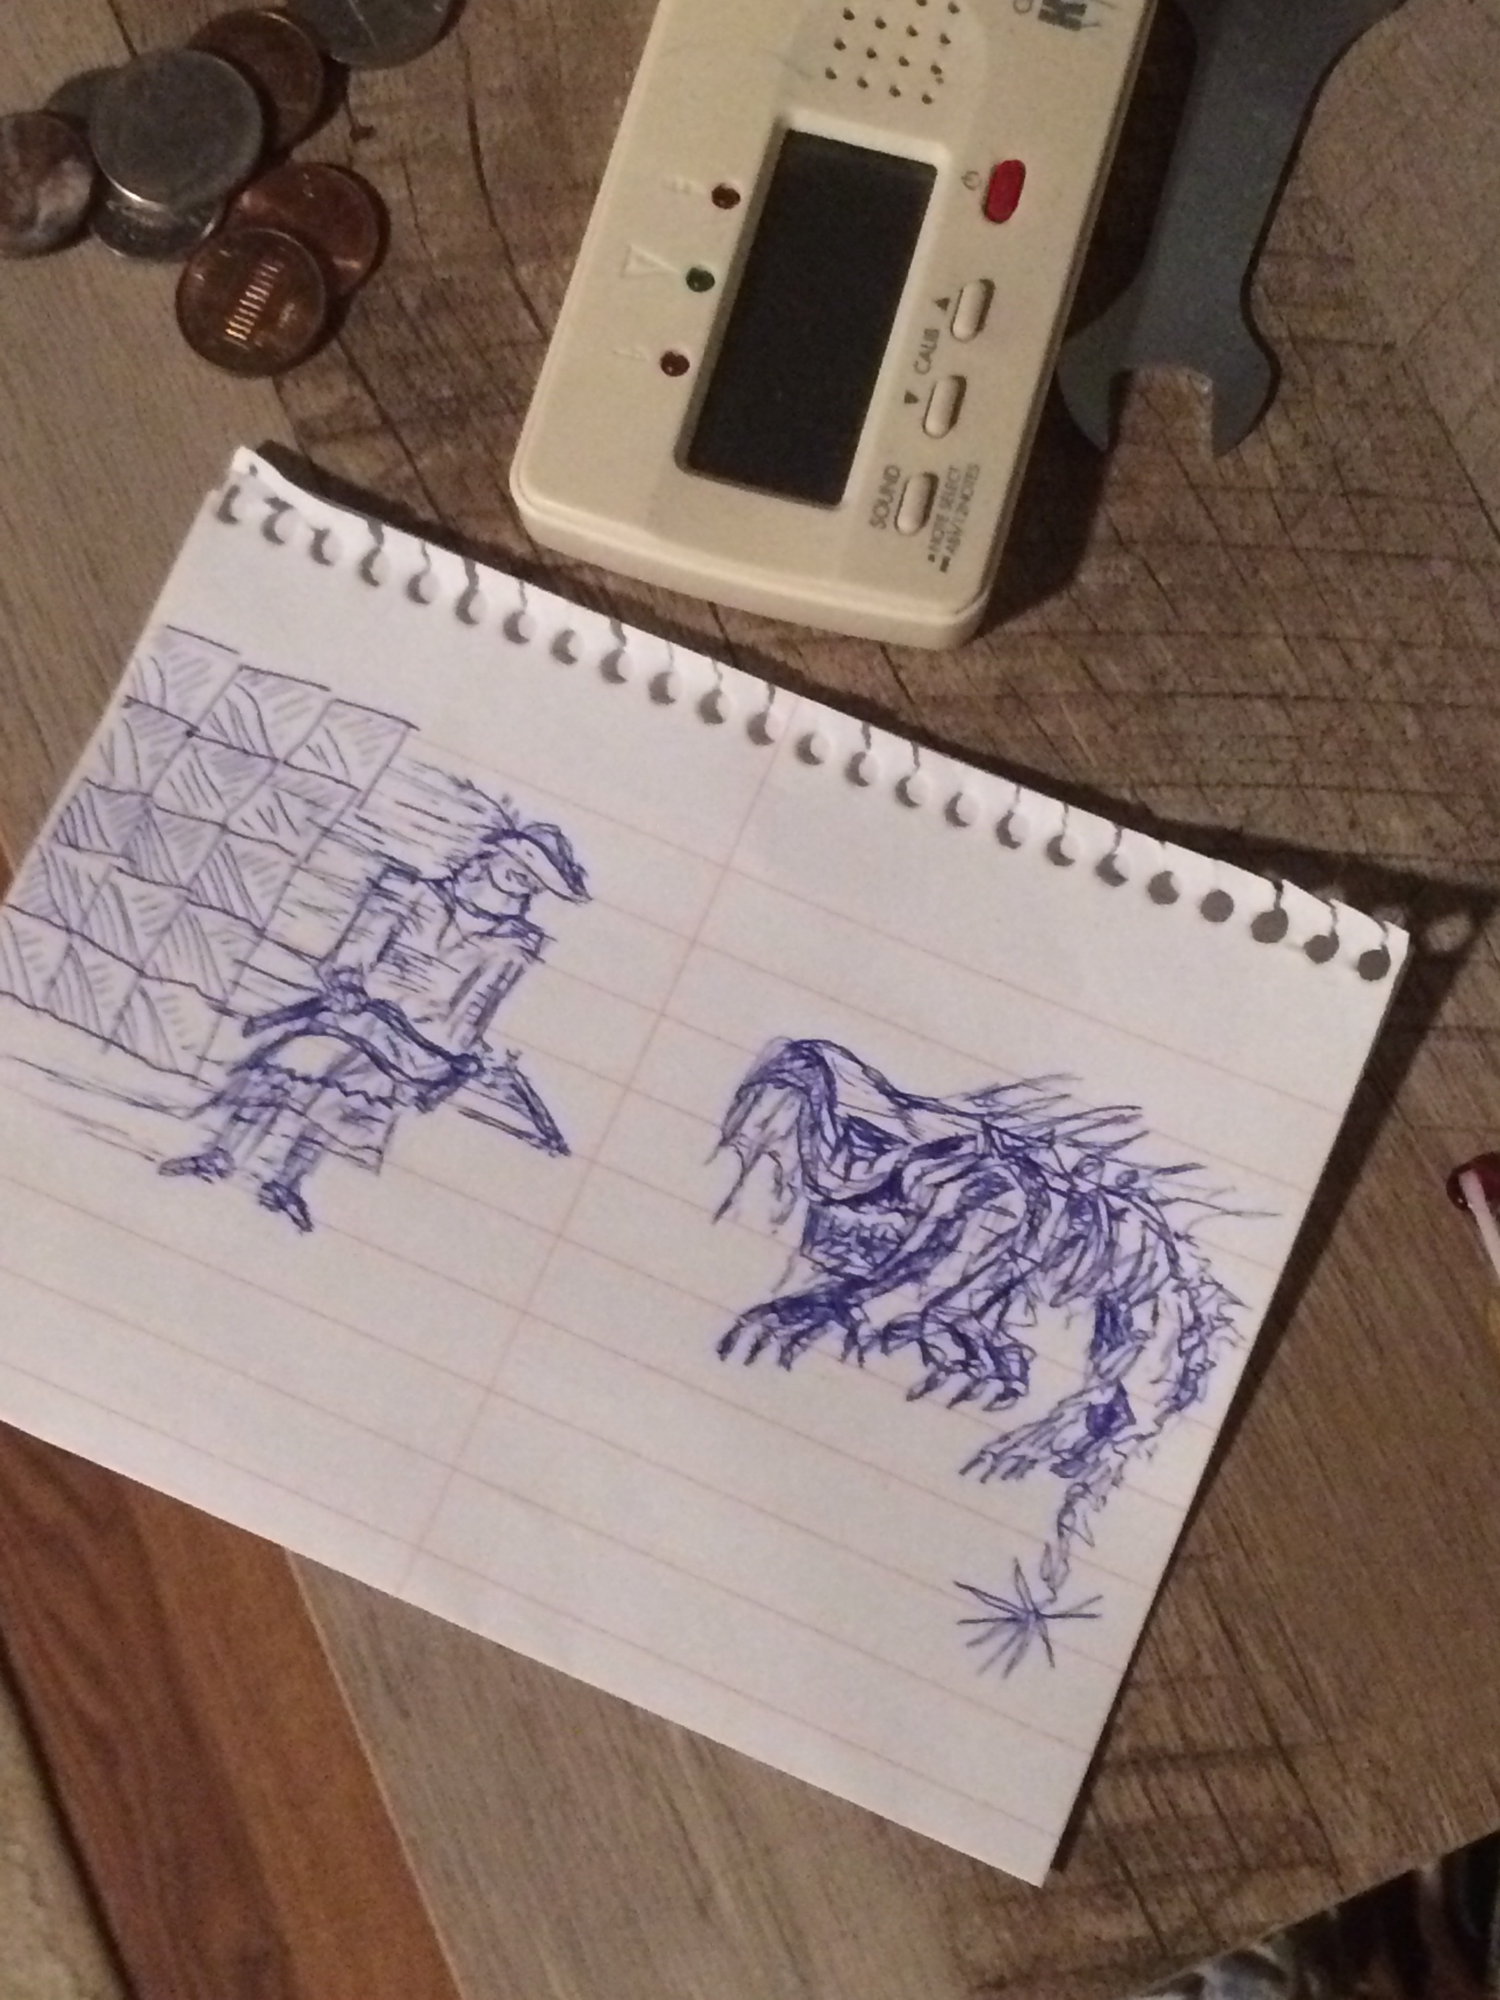 Tiny Bloodborne sketch my dad made